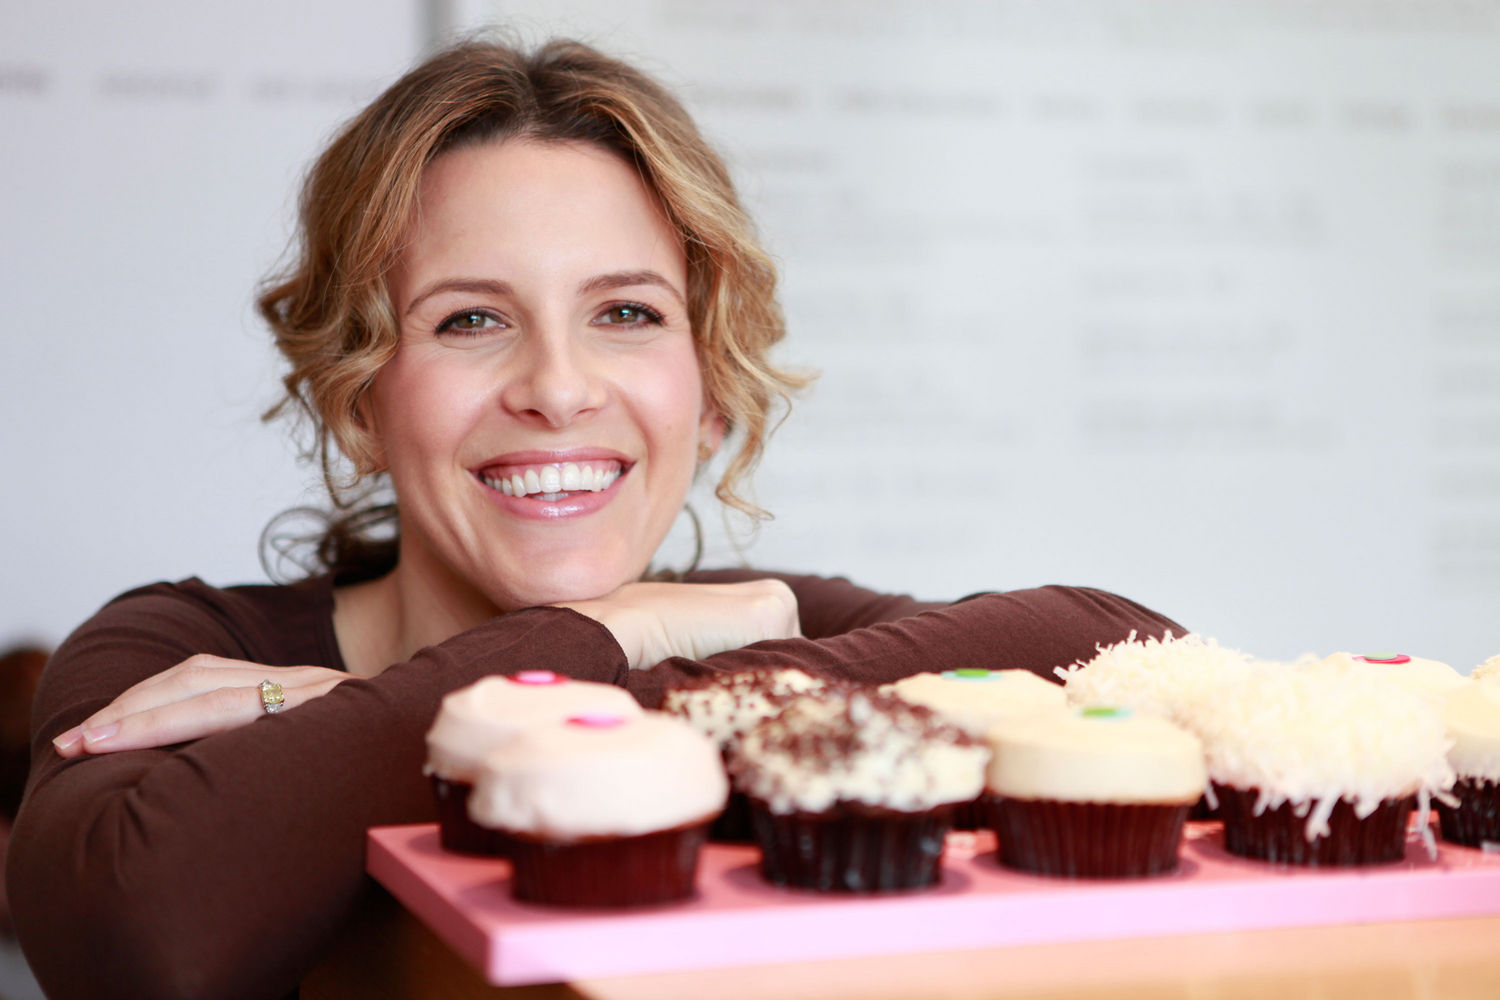 Sprinkles Cupcakes Founder & Pastry Chef, Candace Nelson